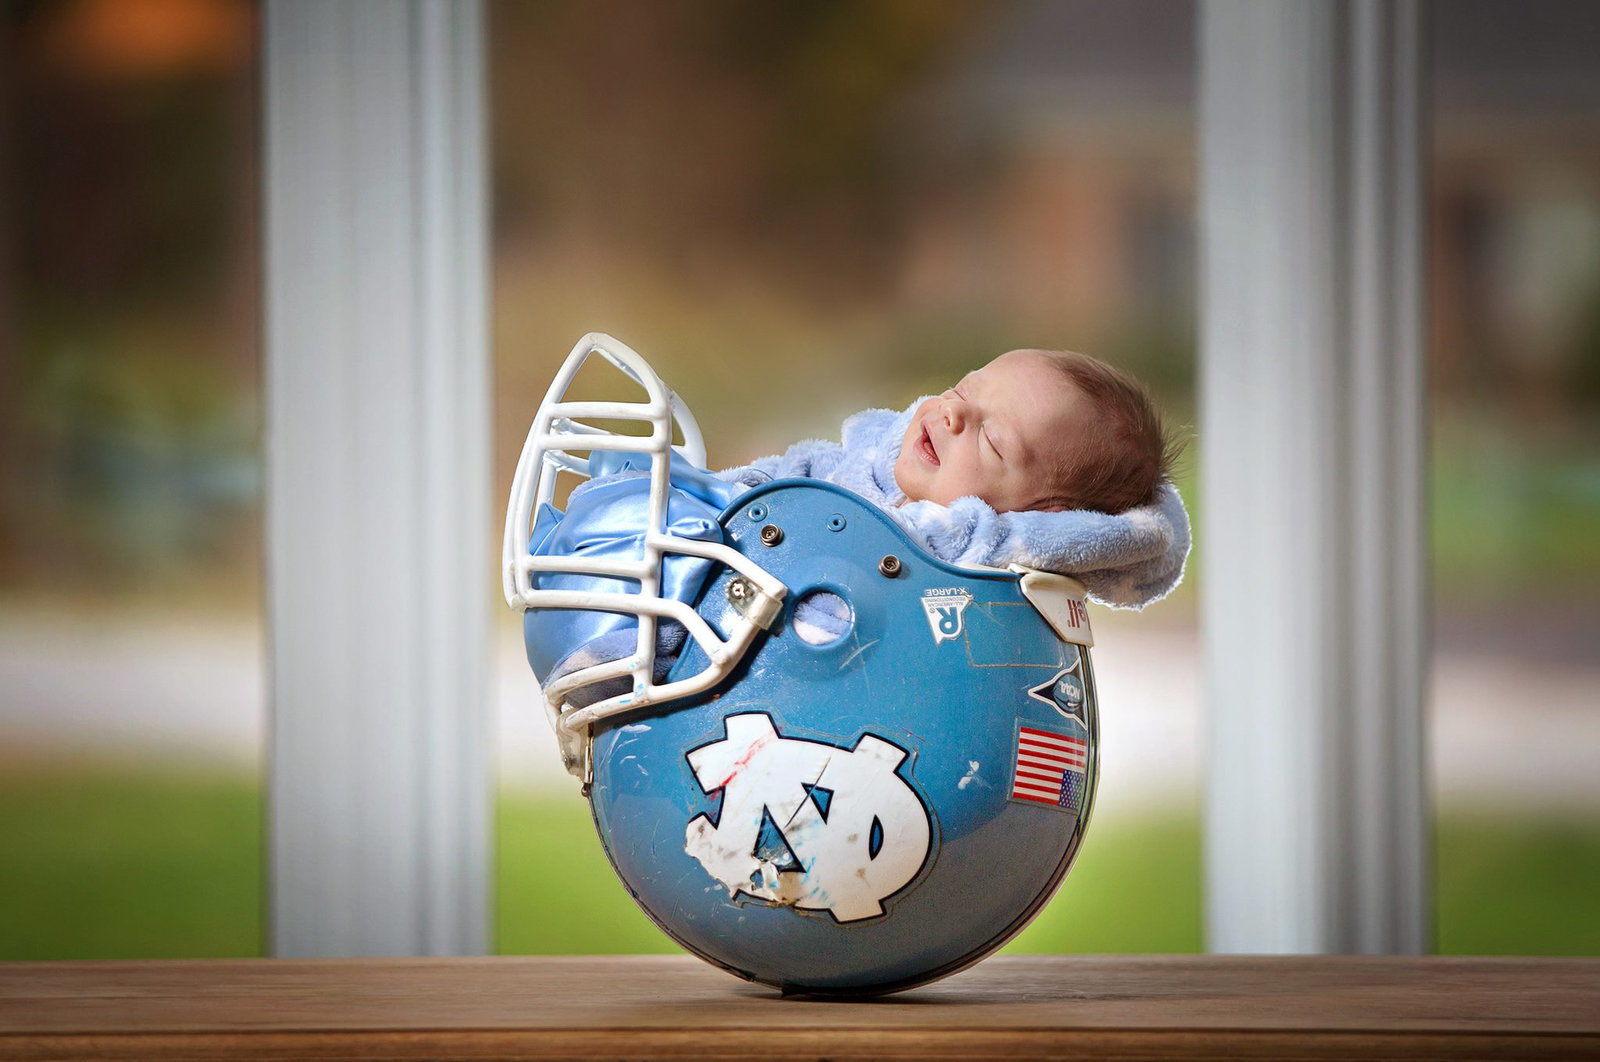 chapel_hill_unc_baby_in_helmet